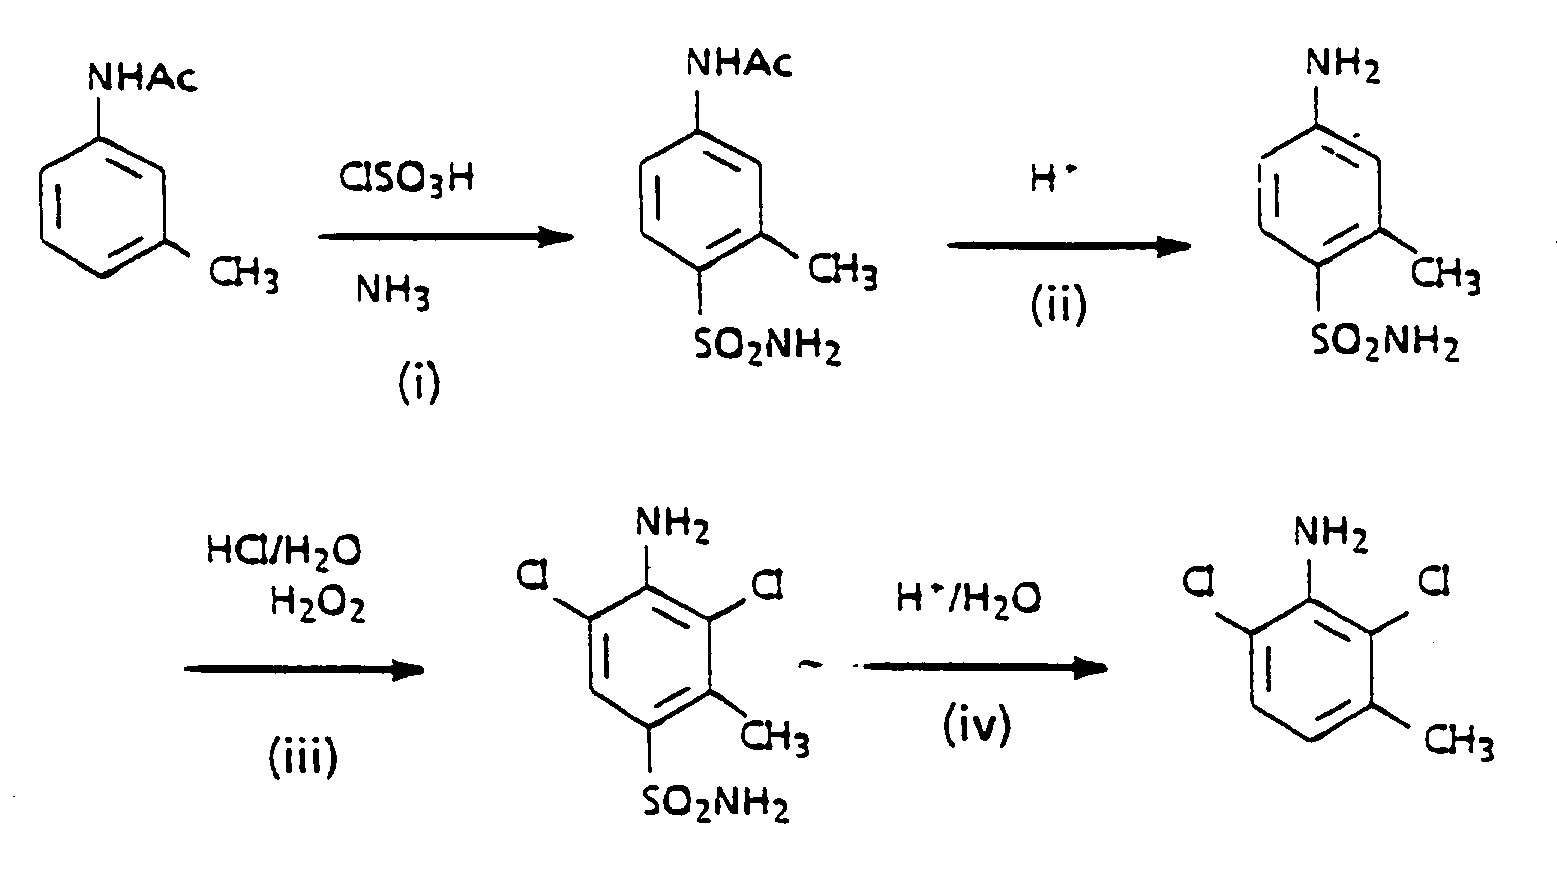 4 bromoaniline from 4 bromoacetanilide by hydrolysis Page 1 exp-10 chem 233l synthesis of p-bromoaniline  3: o hn o  br2 acetanilide hn br bromoacetanilide equation 4: o nh2 hn acid hydrolysis  br.